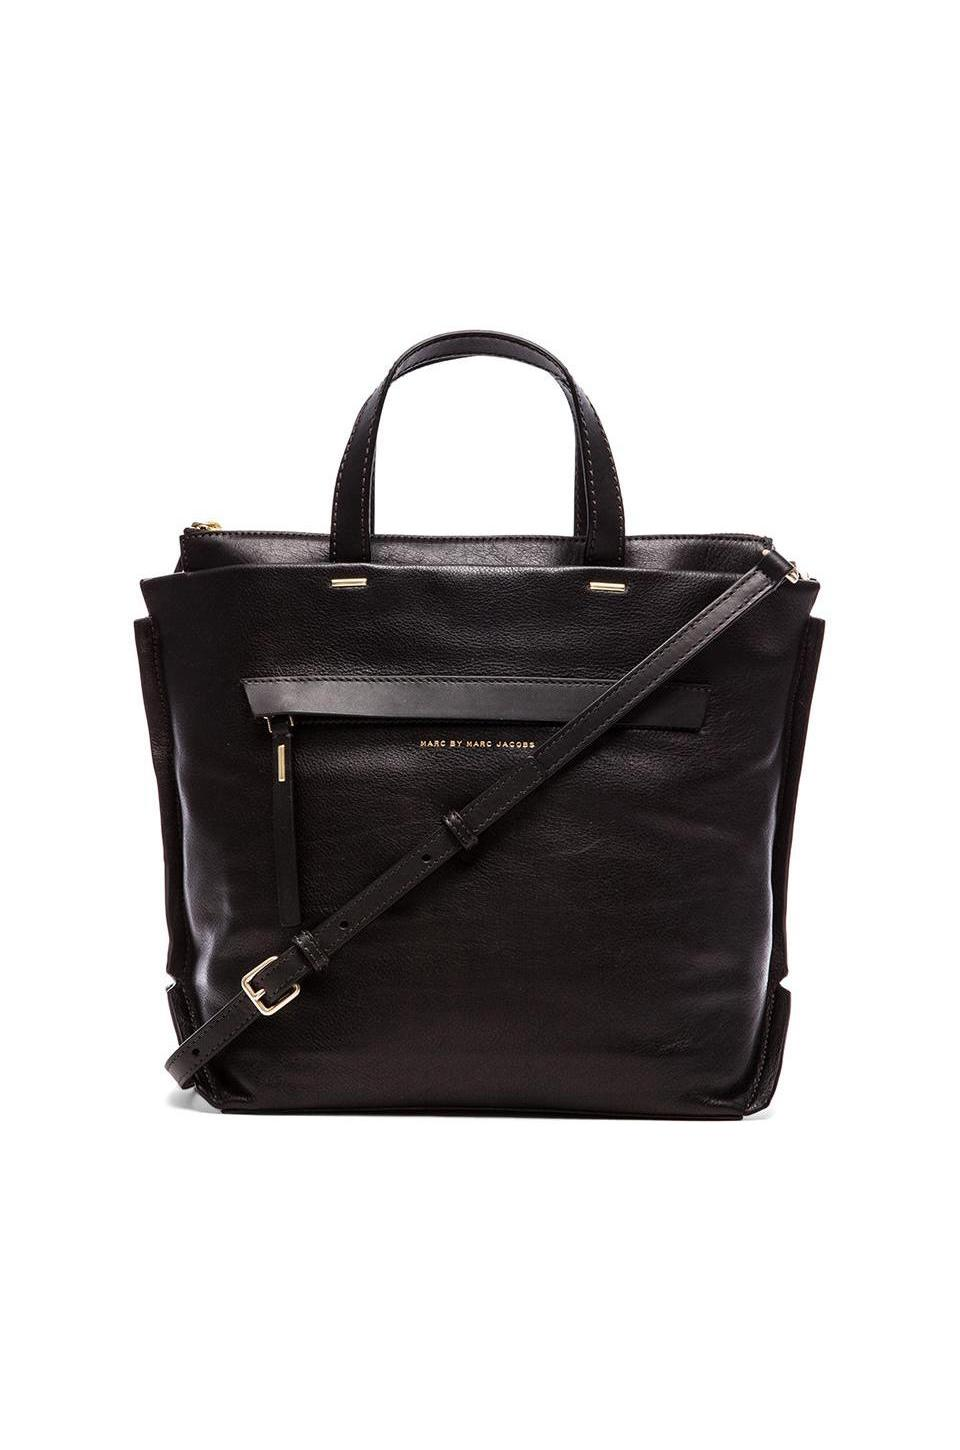 Marc by Marc Jacobs Deconstructed Mansy Tote in Black